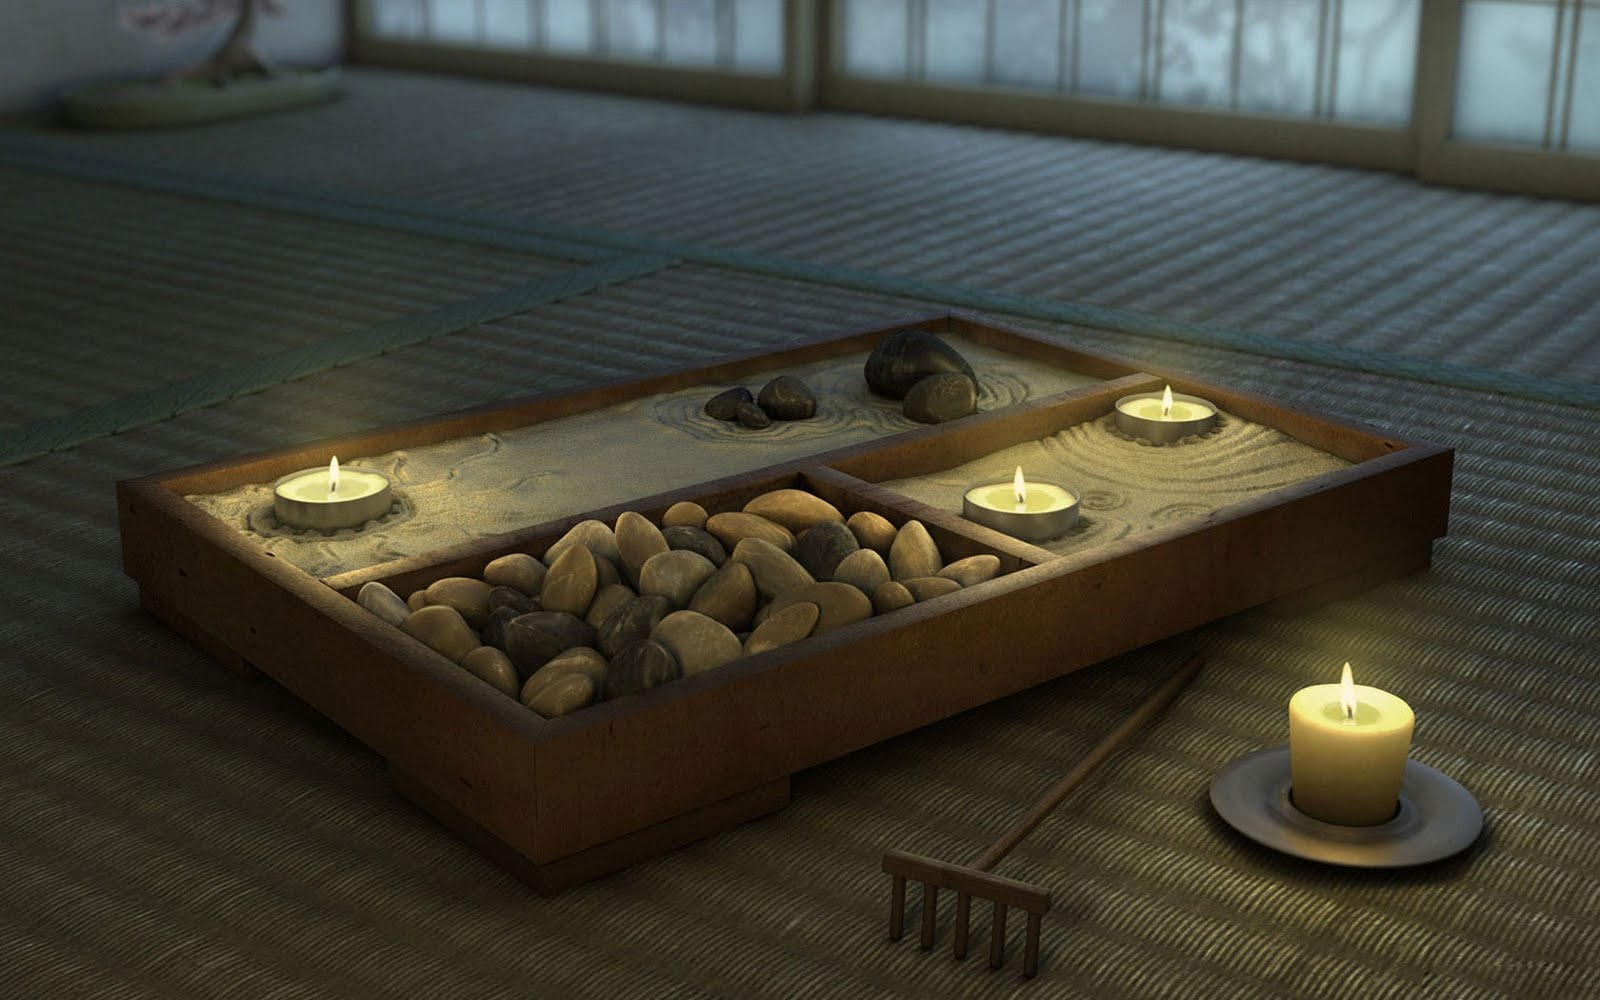 Top 5 best desktop zen gardens list my zen decor for Zen room accessories